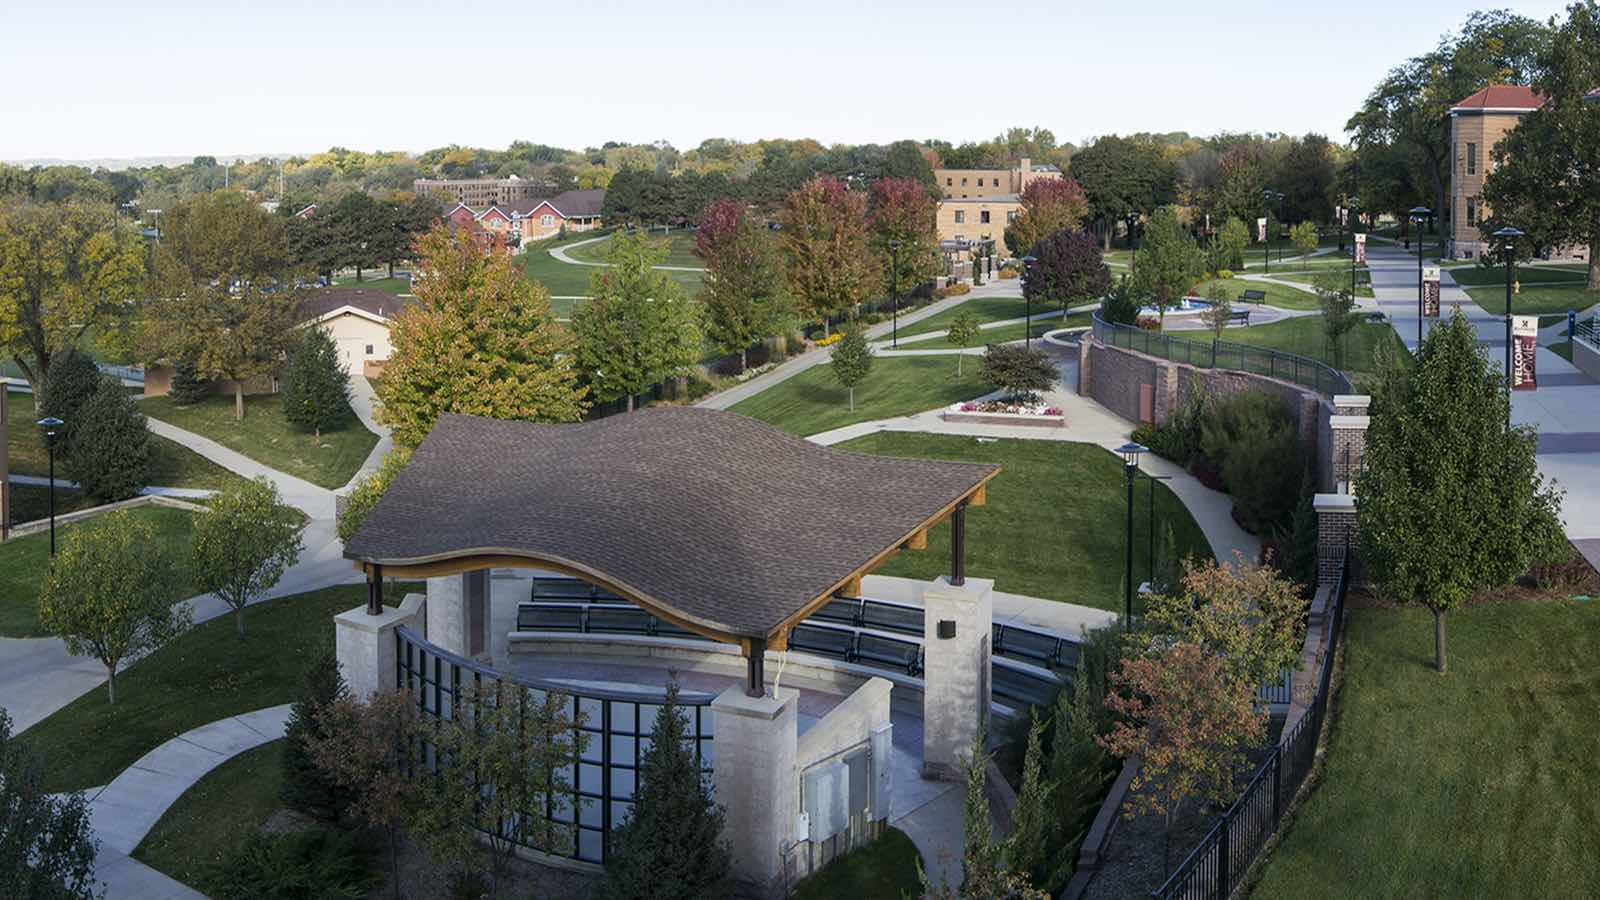 Aerial view of Morningside College campus.